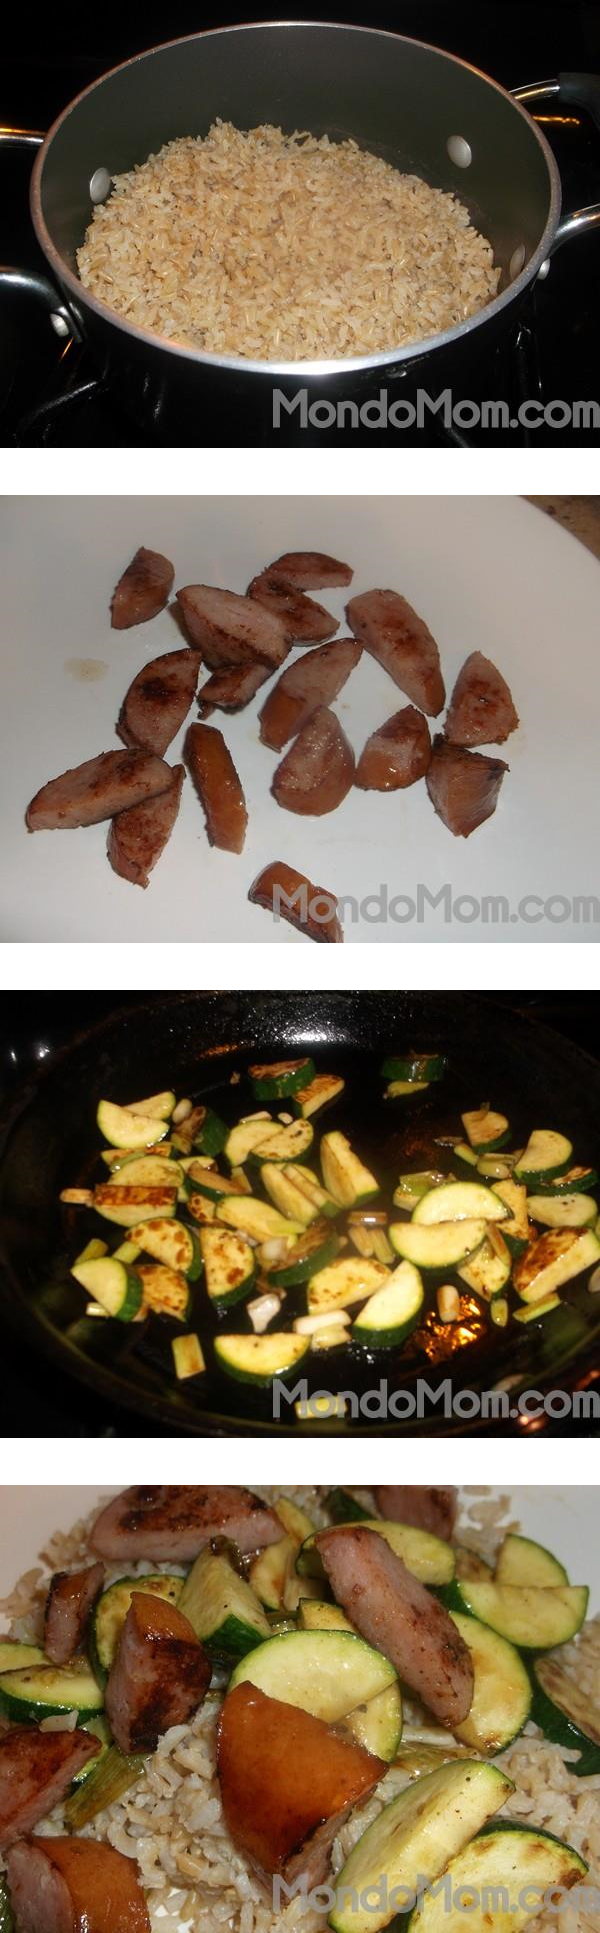 Kielbasa and zucchini recipe steps